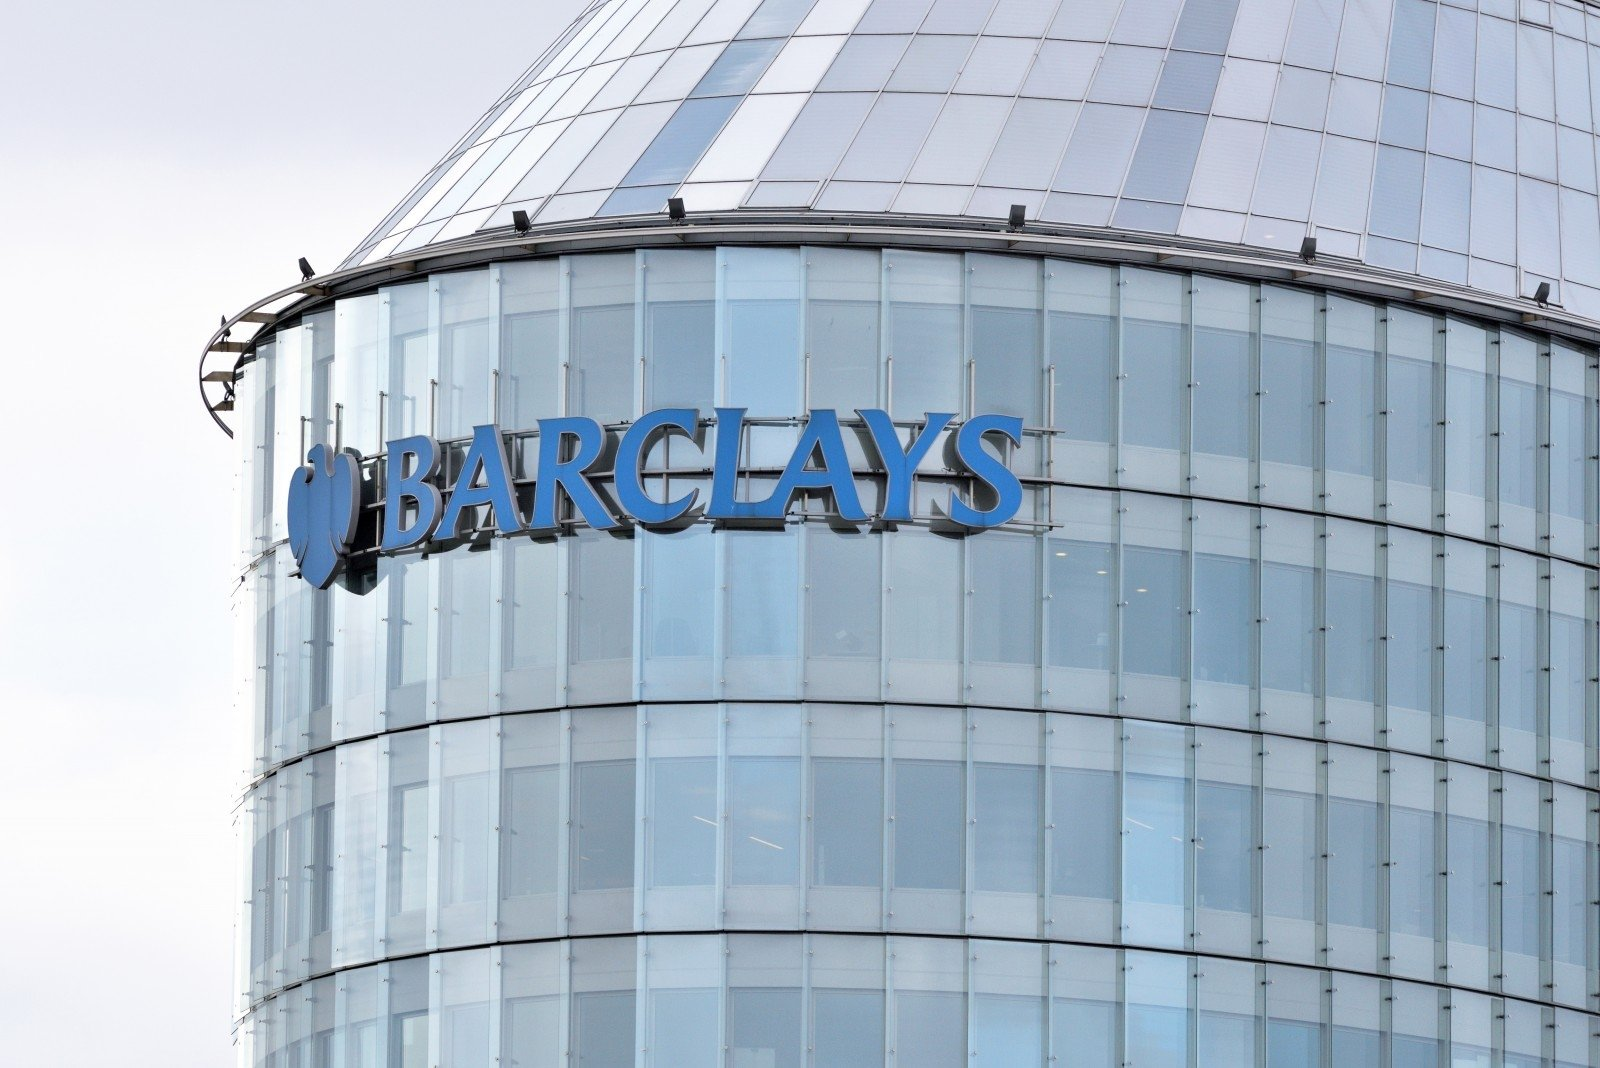 Pm Untroubled By Barclays Decision To Close Operations Center In Vilnius